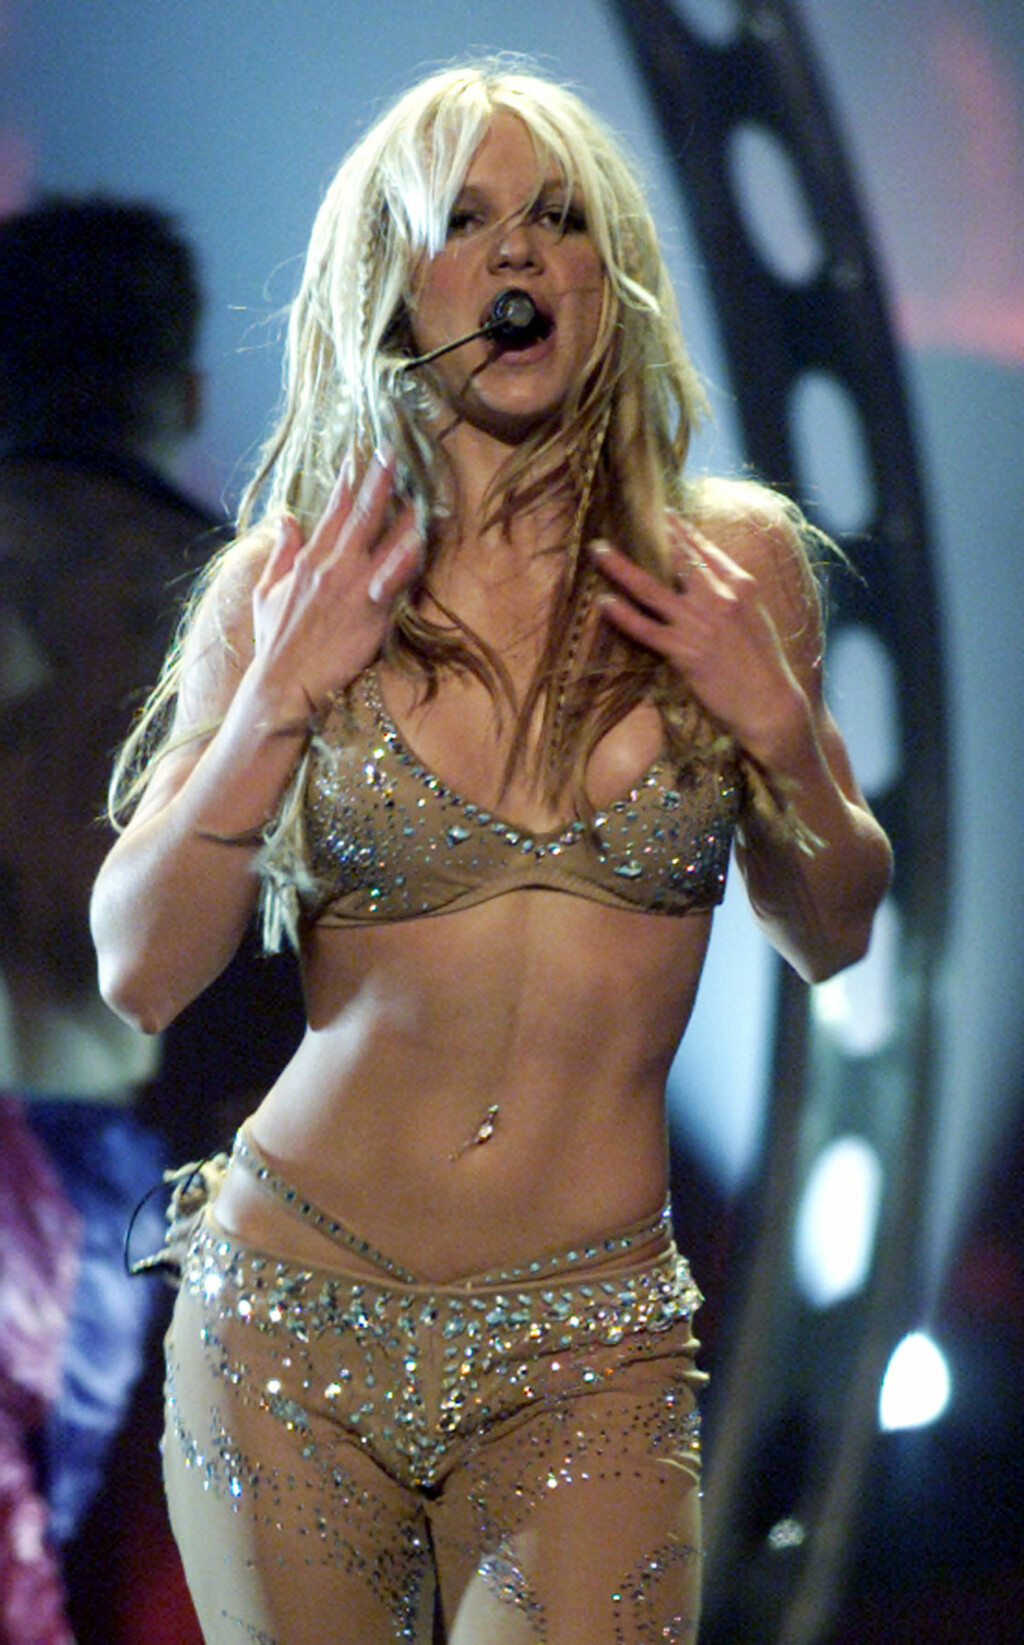 I KNALLFORM: Da Britney Spears var superstjerne rundt år 2000, viste hun stadig frem den veltrente magen sin i korte topper. Her på scenen under MTV Video Music Awards i New York i september 2000.  Foto: REUTERS